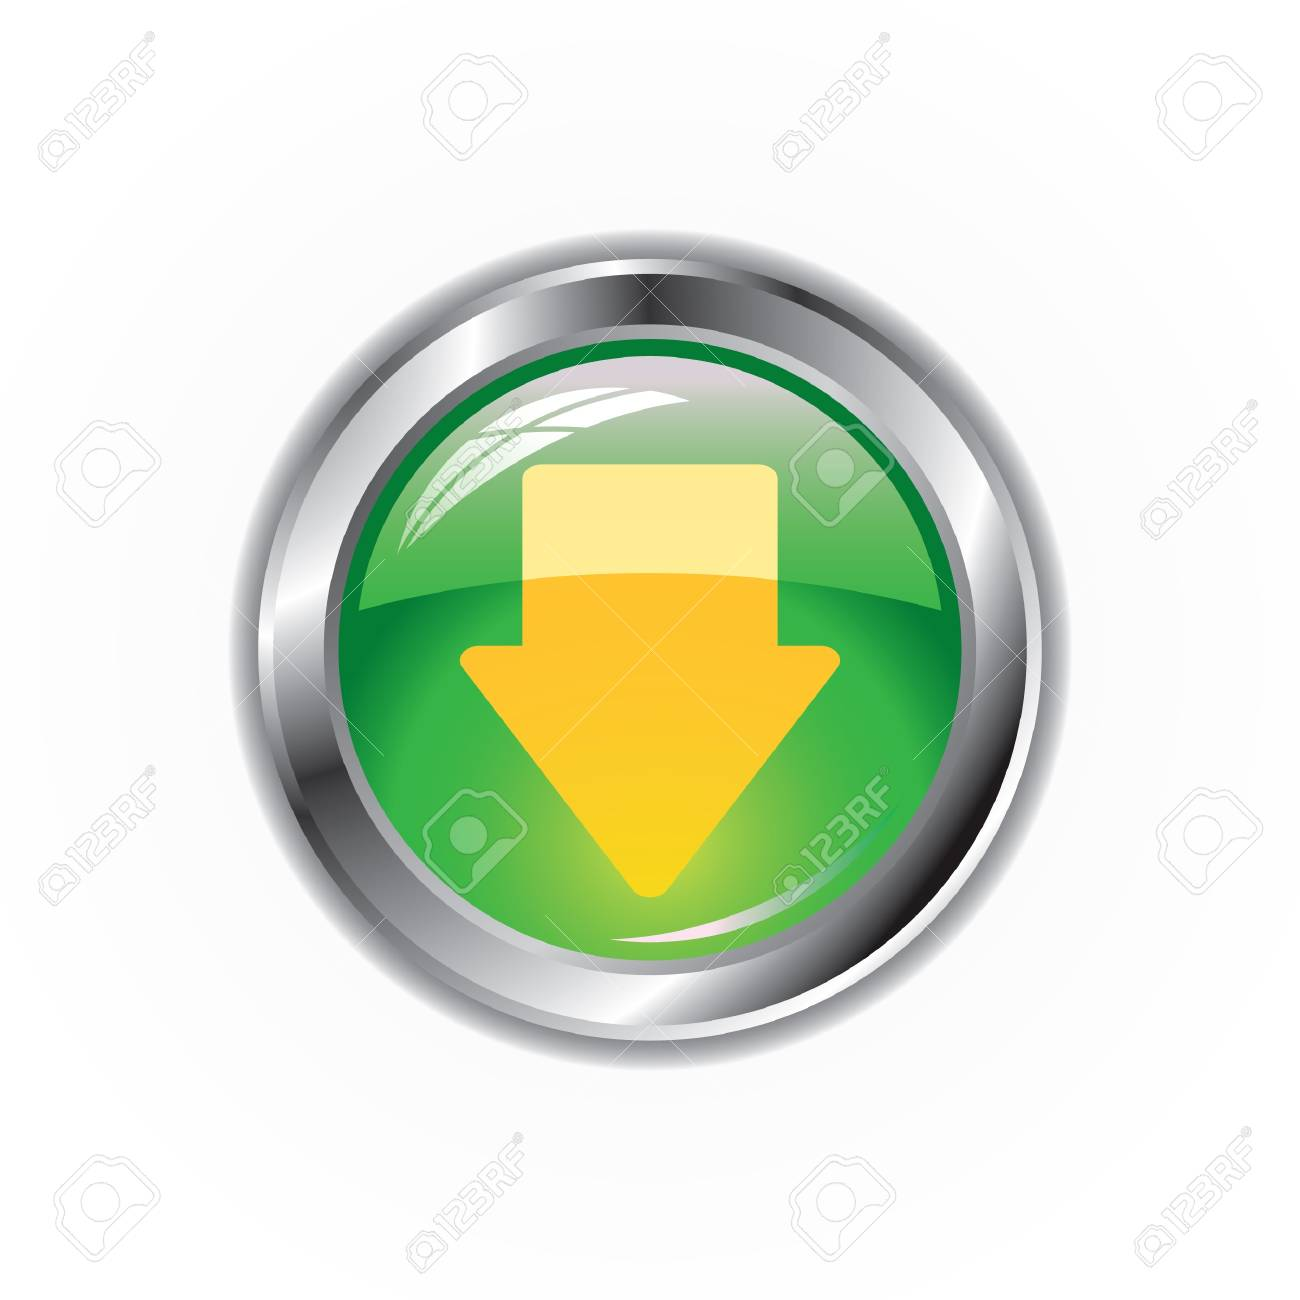 download icon Stock Vector - 18457745